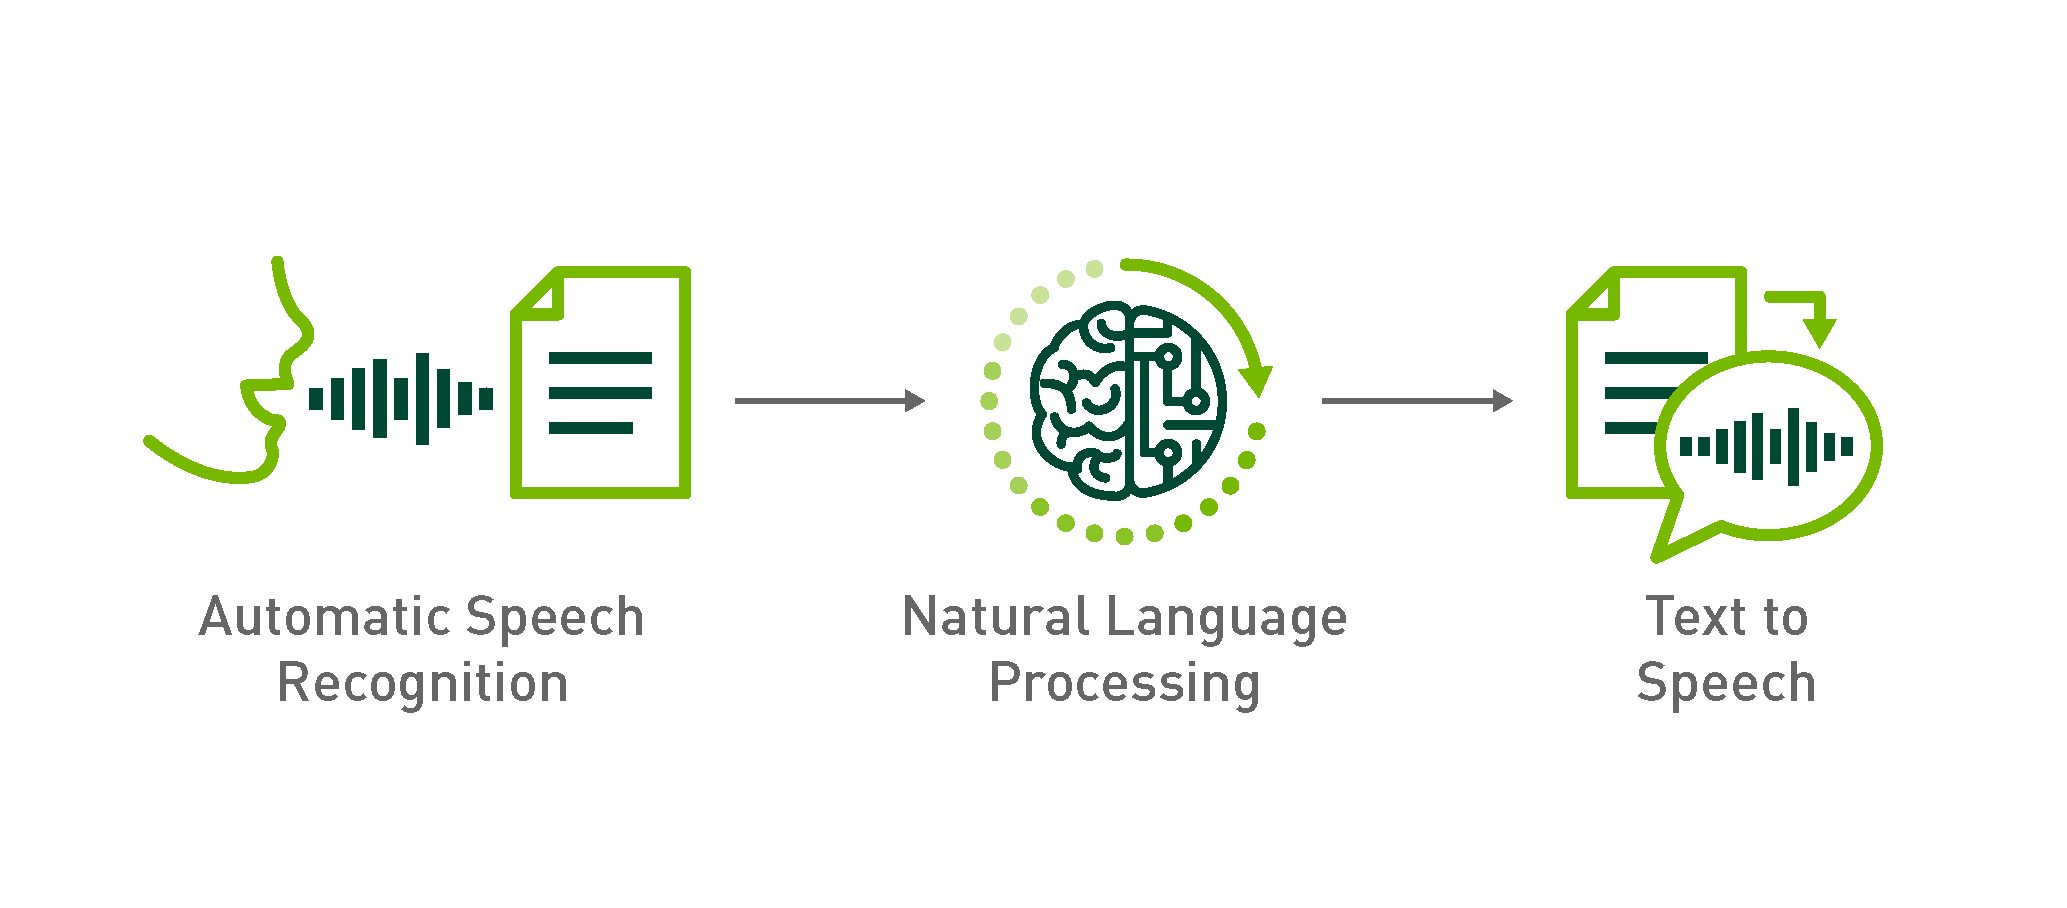 How To Build Domain Specific Automatic Speech Recognition Models On Gpus Nvidia Developer Blog